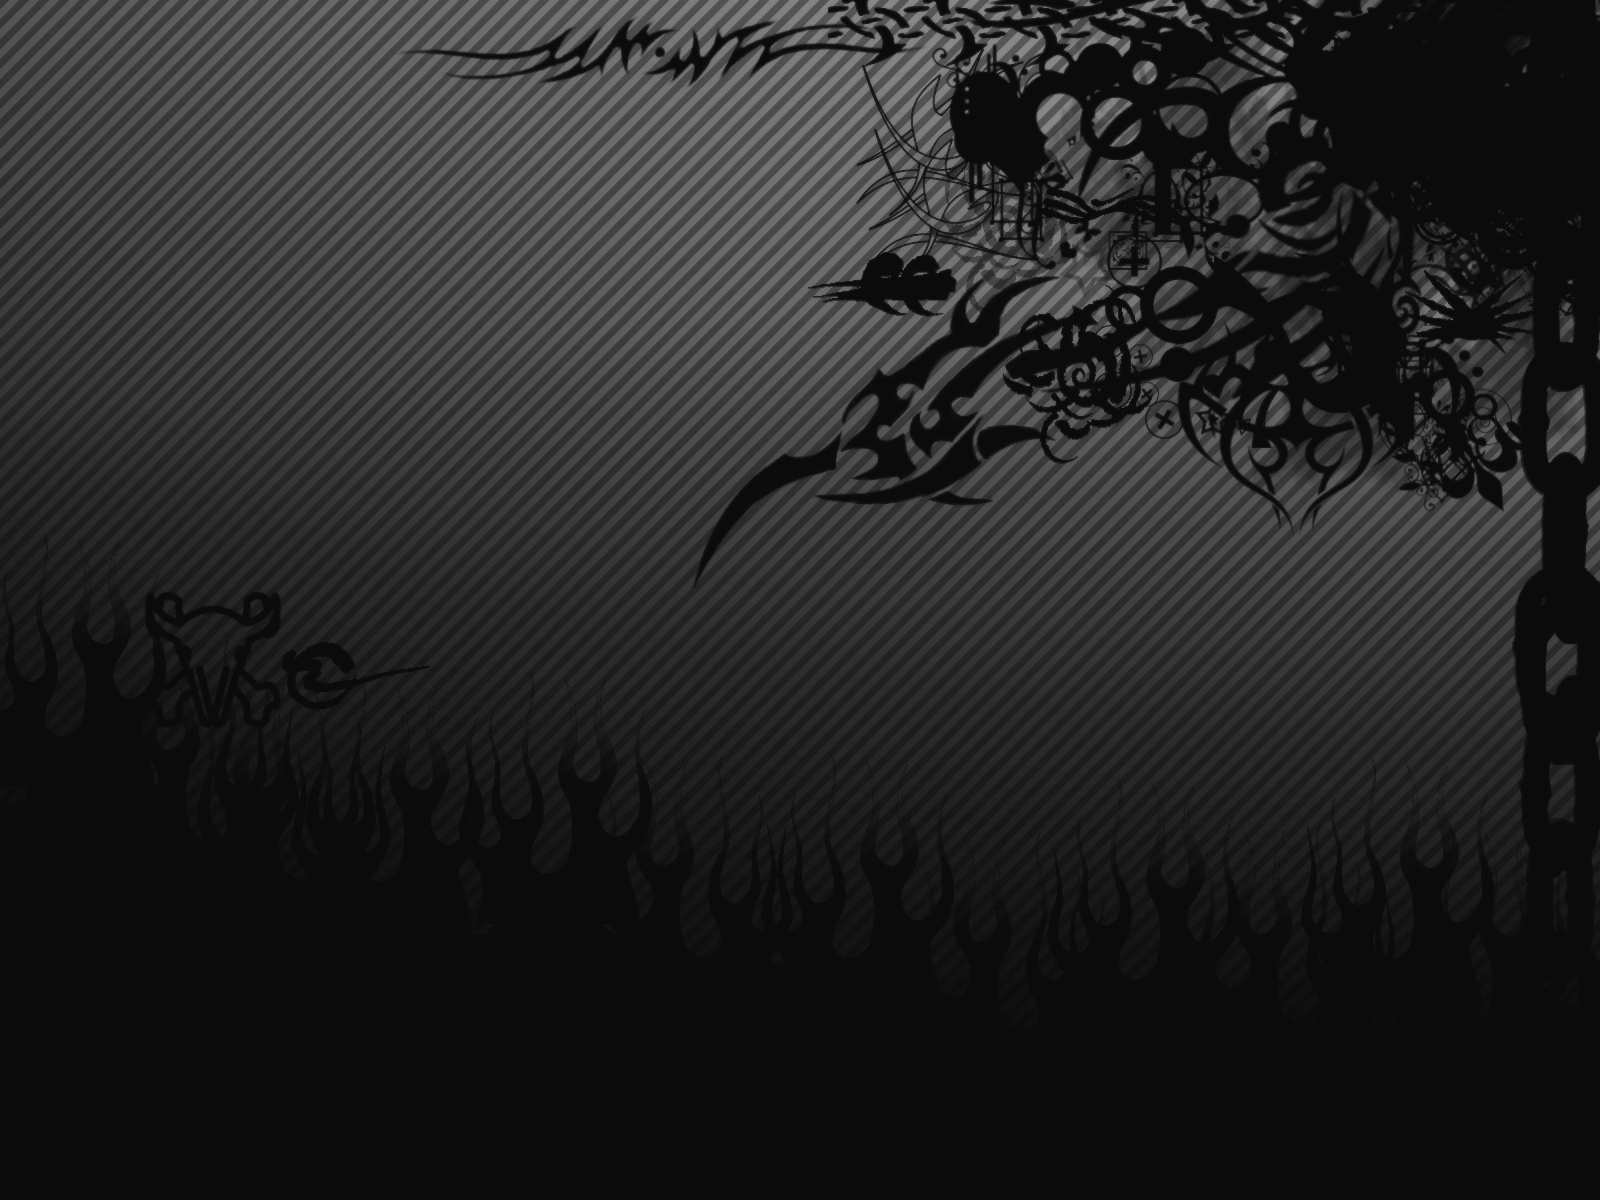 Download 5700 Wallpaper Hitam Batik Hd Foto HD Terbaru